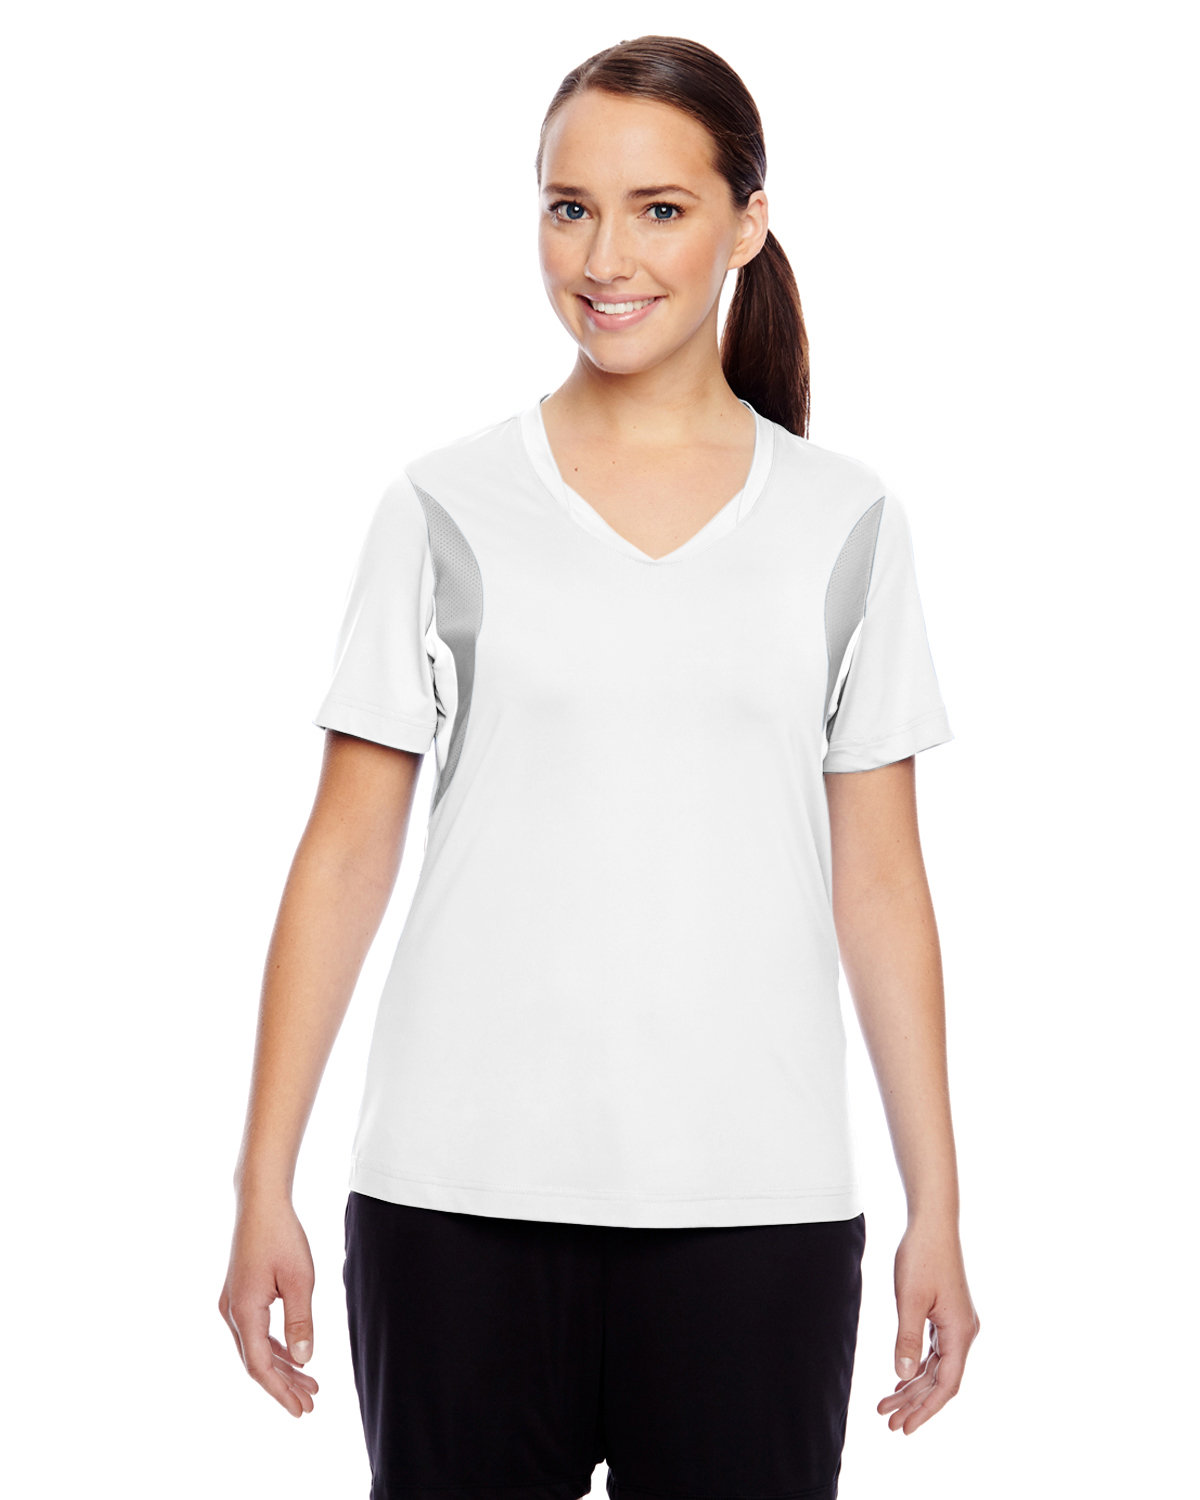 Team 365 Ladies' Short-Sleeve Athletic V-Neck Tournament Jersey WHITE/ SP SILVER